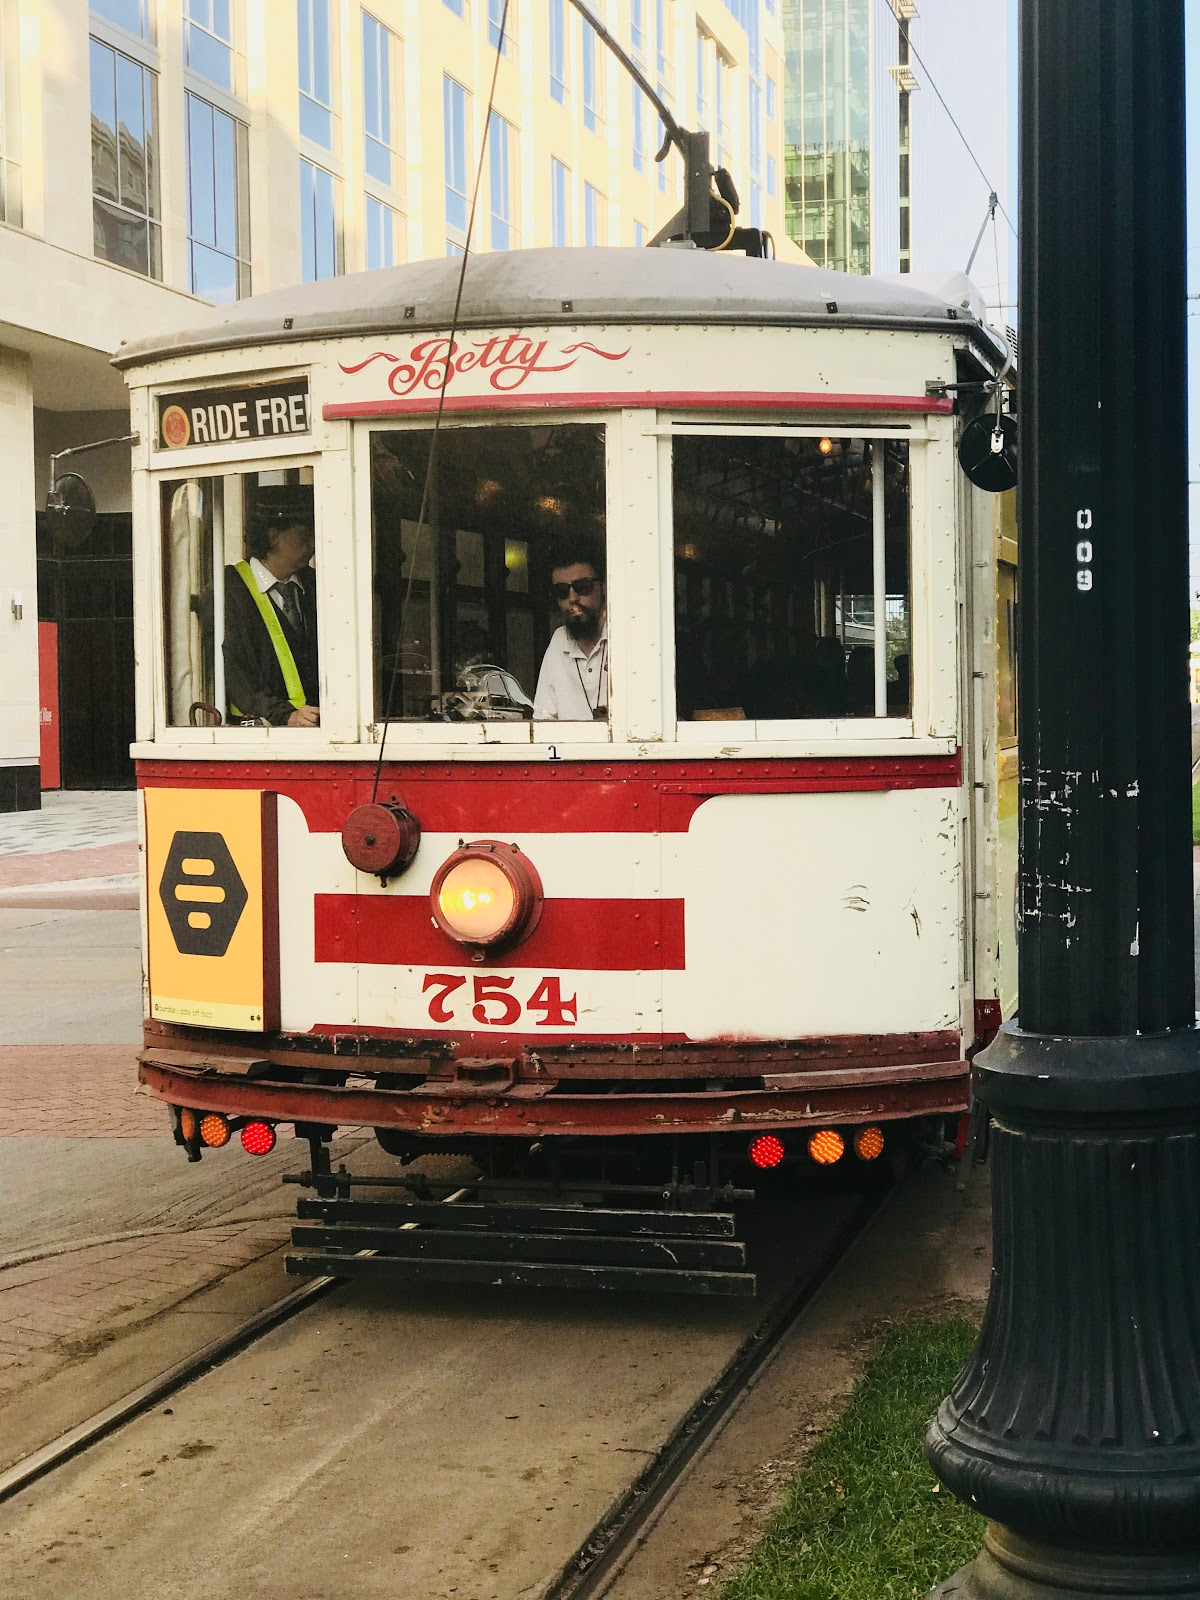 Image: My City Diaries-Trolley In Dallas Texas. What We Do As A Family In Dallas